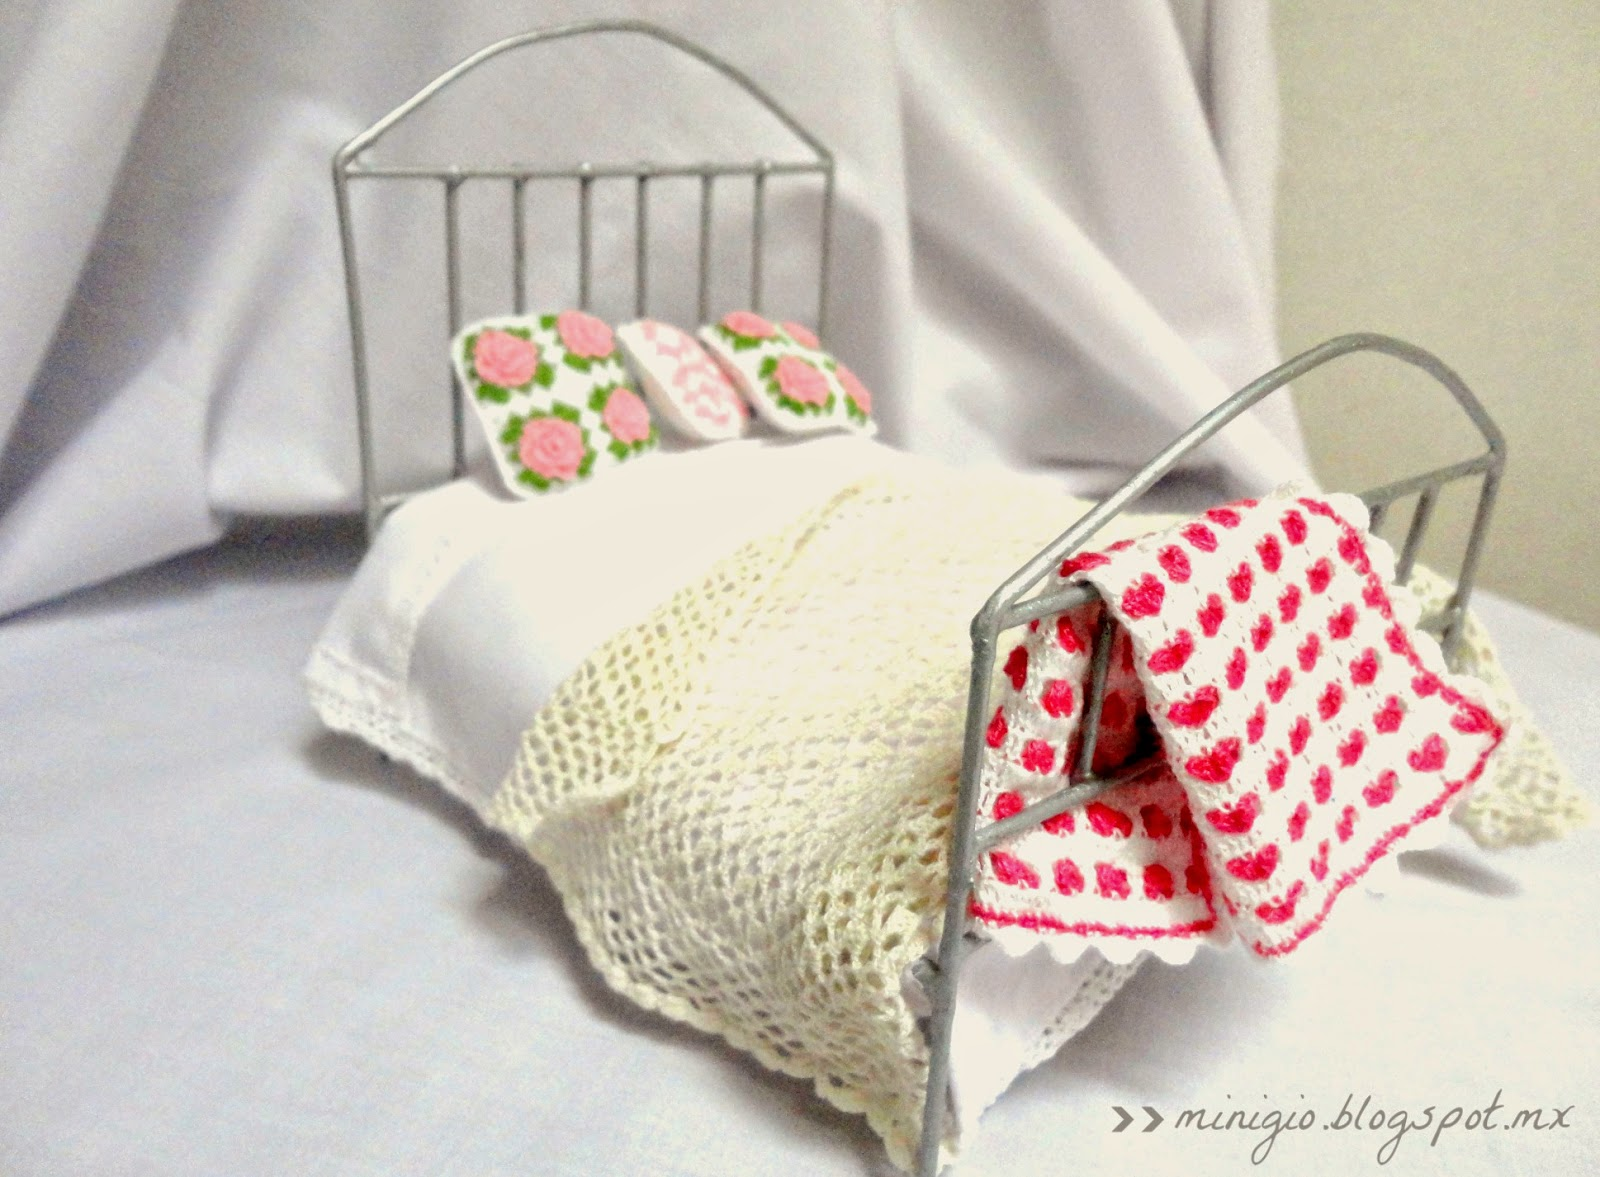 Dollhouse bed, scale 1:12, miniature crochet, casa de muñecas